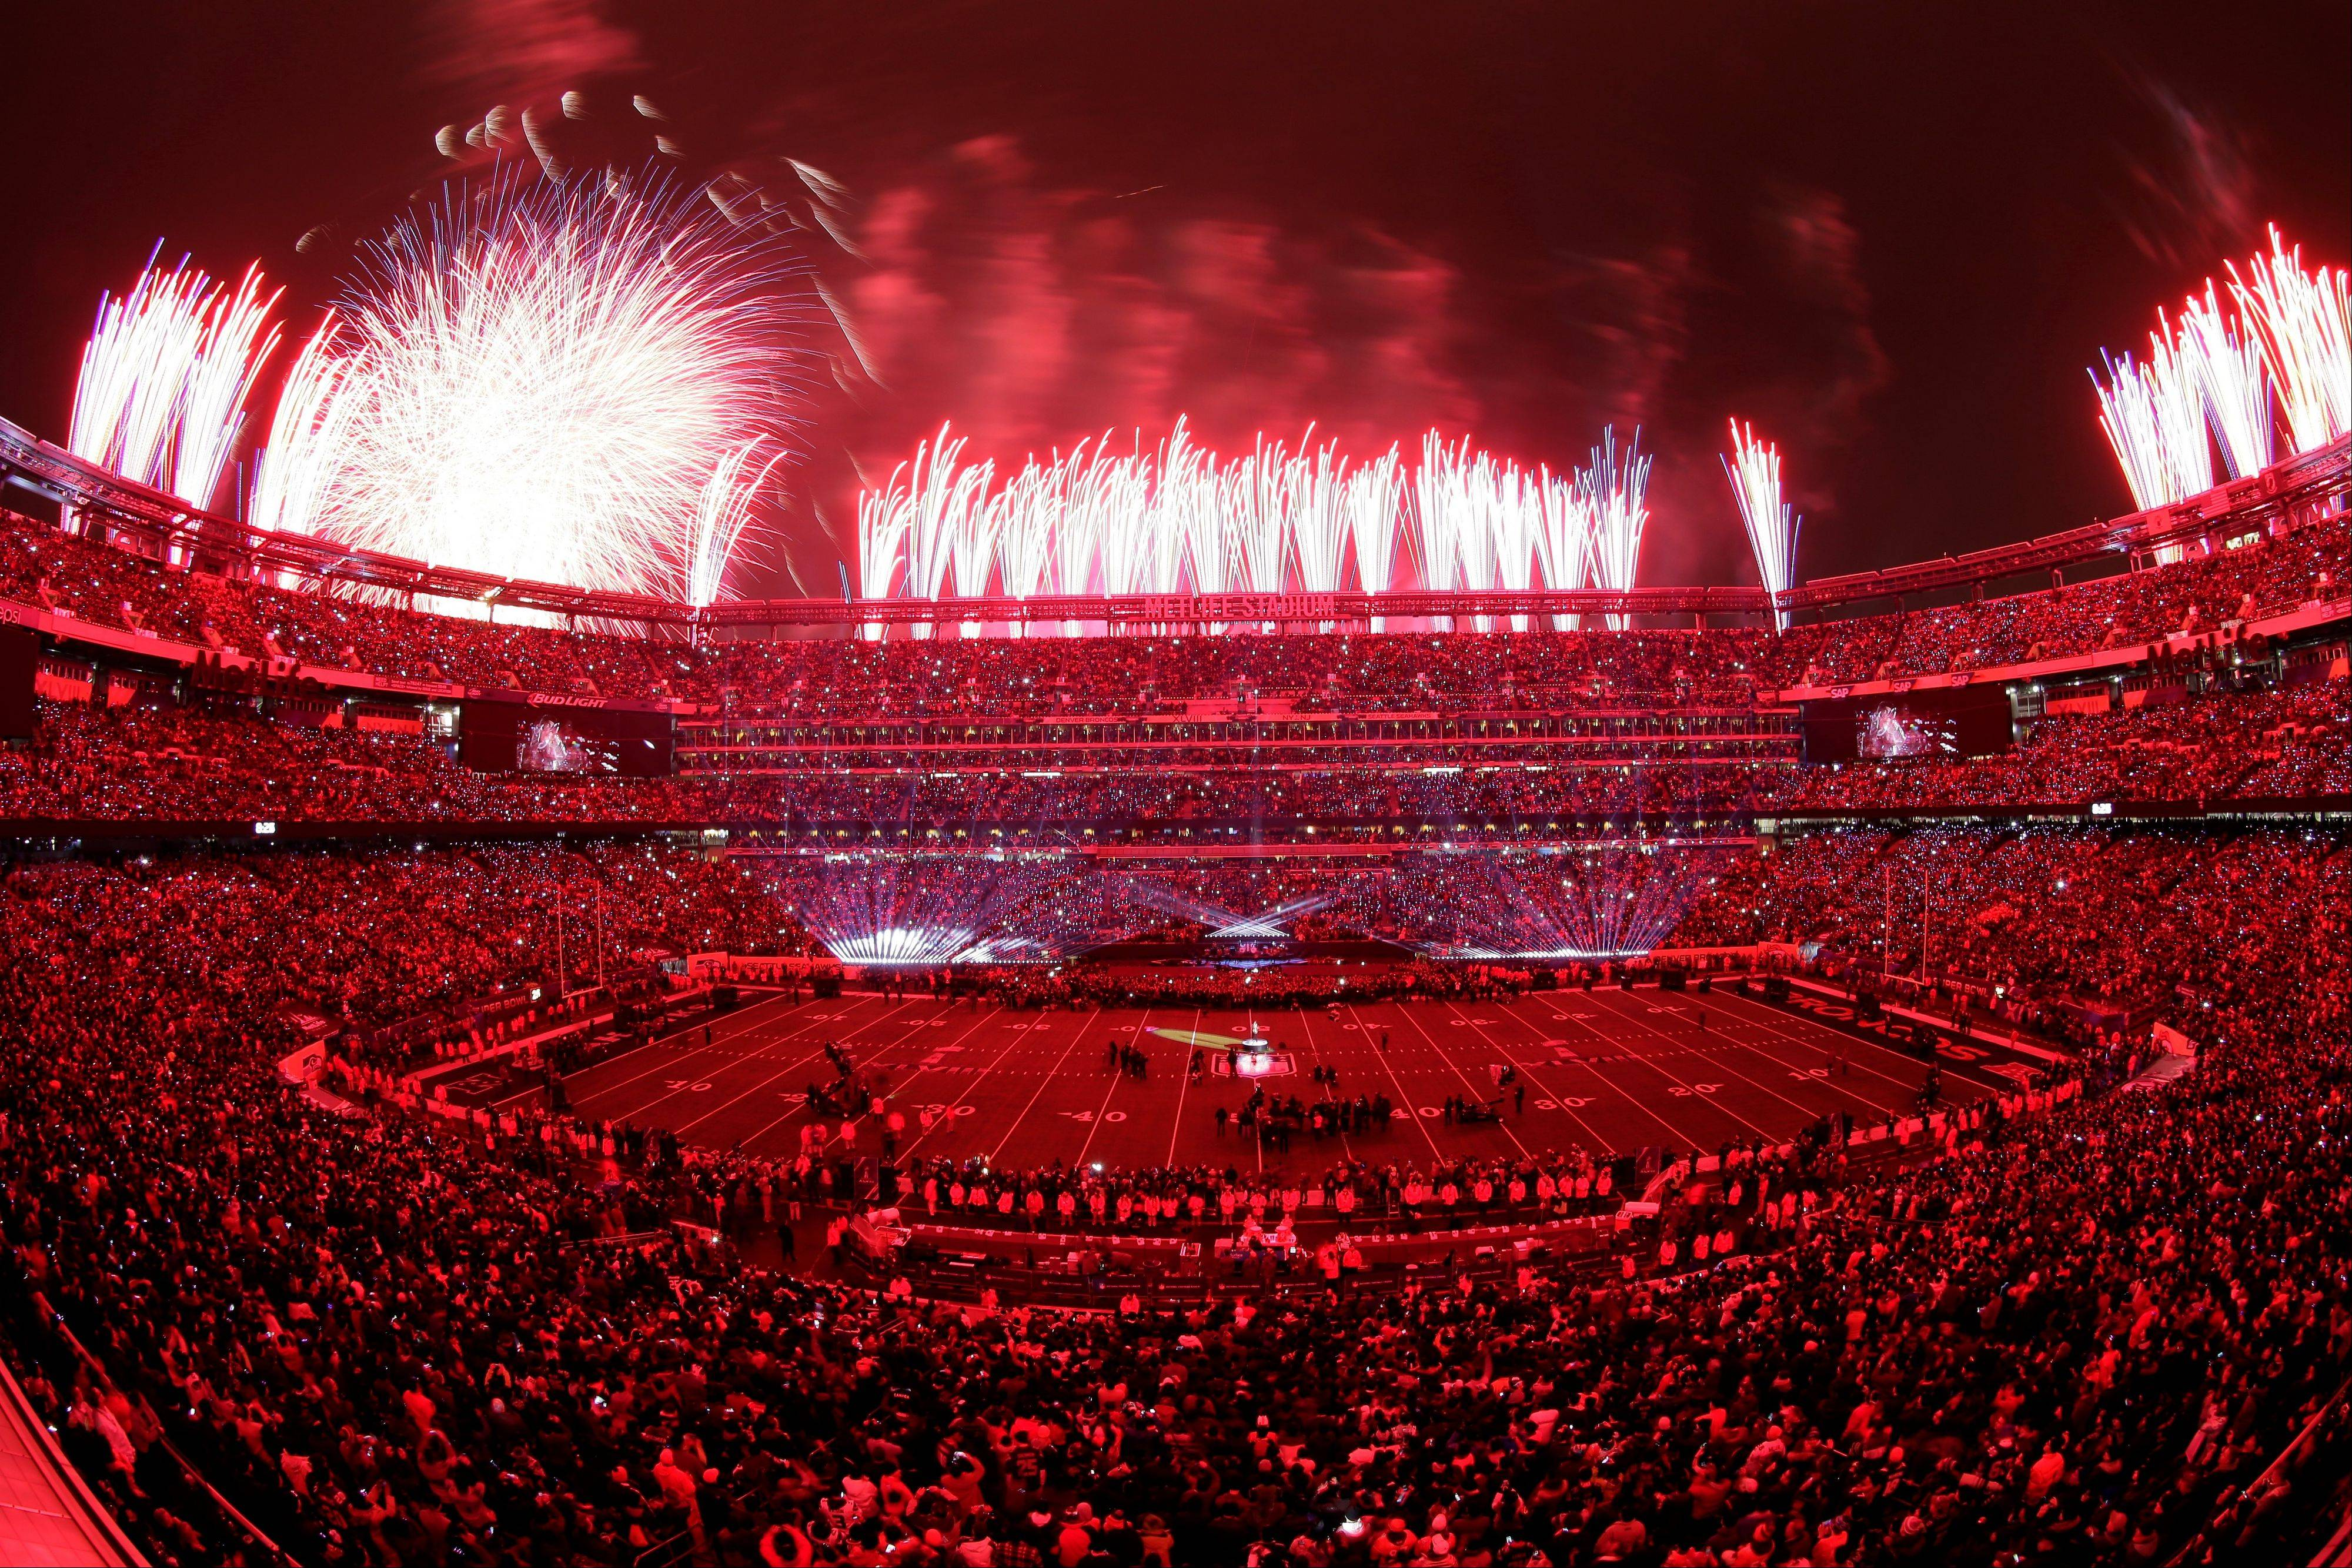 Fans watch a pyrotechnics display during the halftime show of the NFL Super Bowl XLVIII football game.